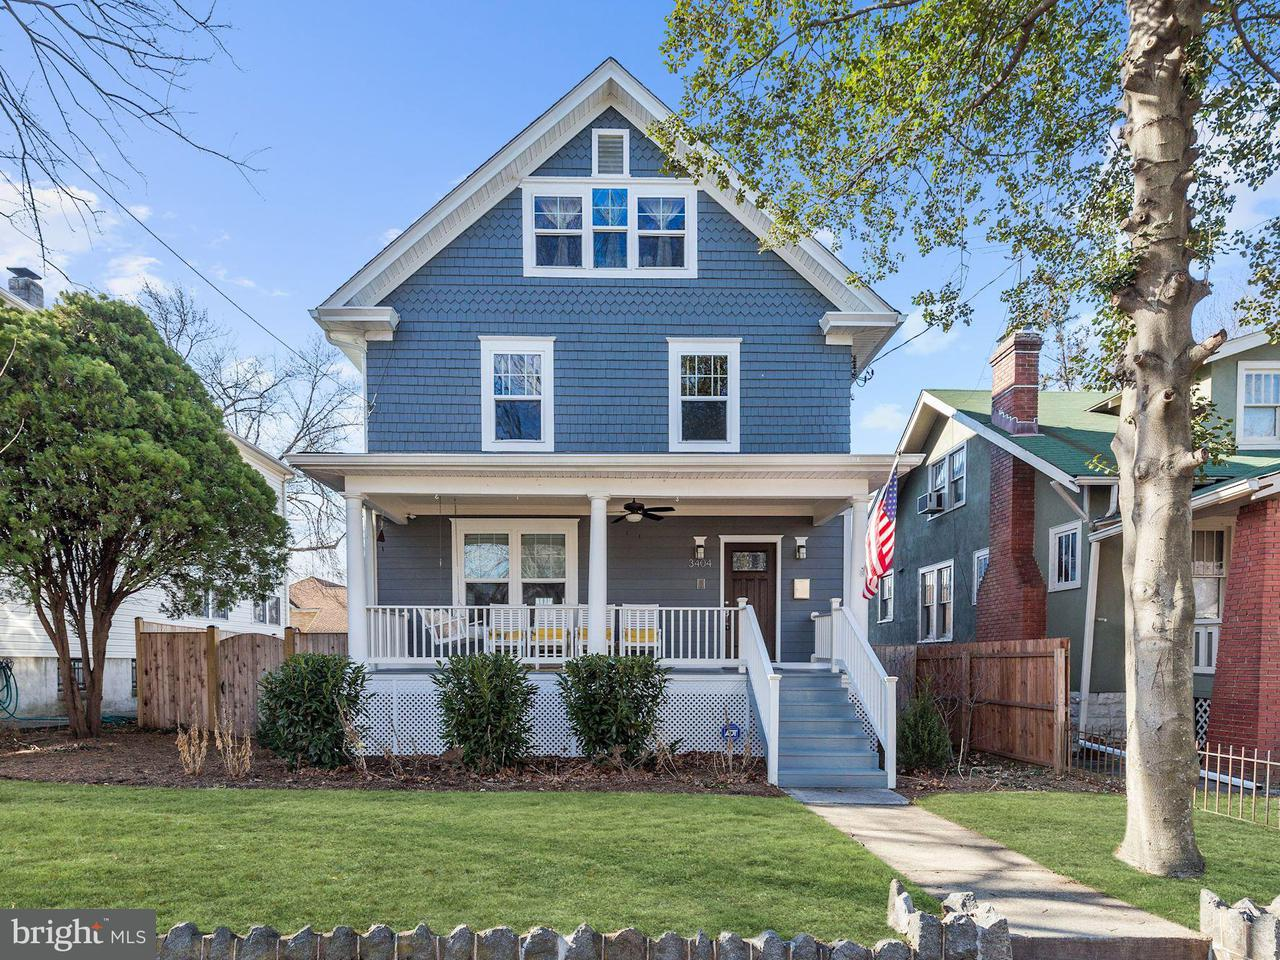 Single Family Home for Sale at 3404 22nd St Ne 3404 22nd St Ne Washington, District Of Columbia 20018 United States